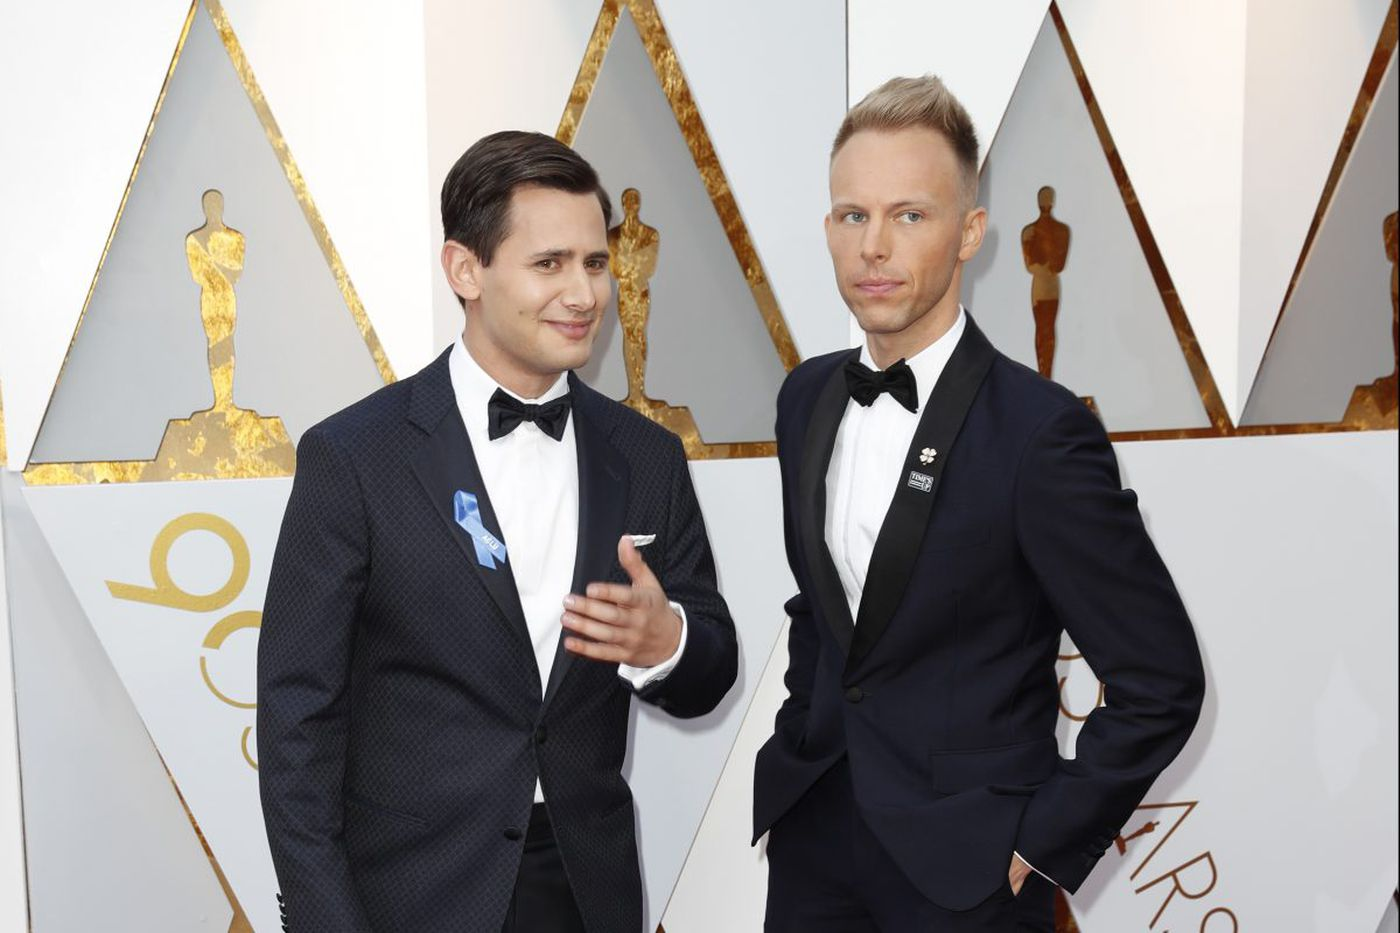 Upcoming 'Aladdin' reboot will feature music from Ardmore's Benj Pasek